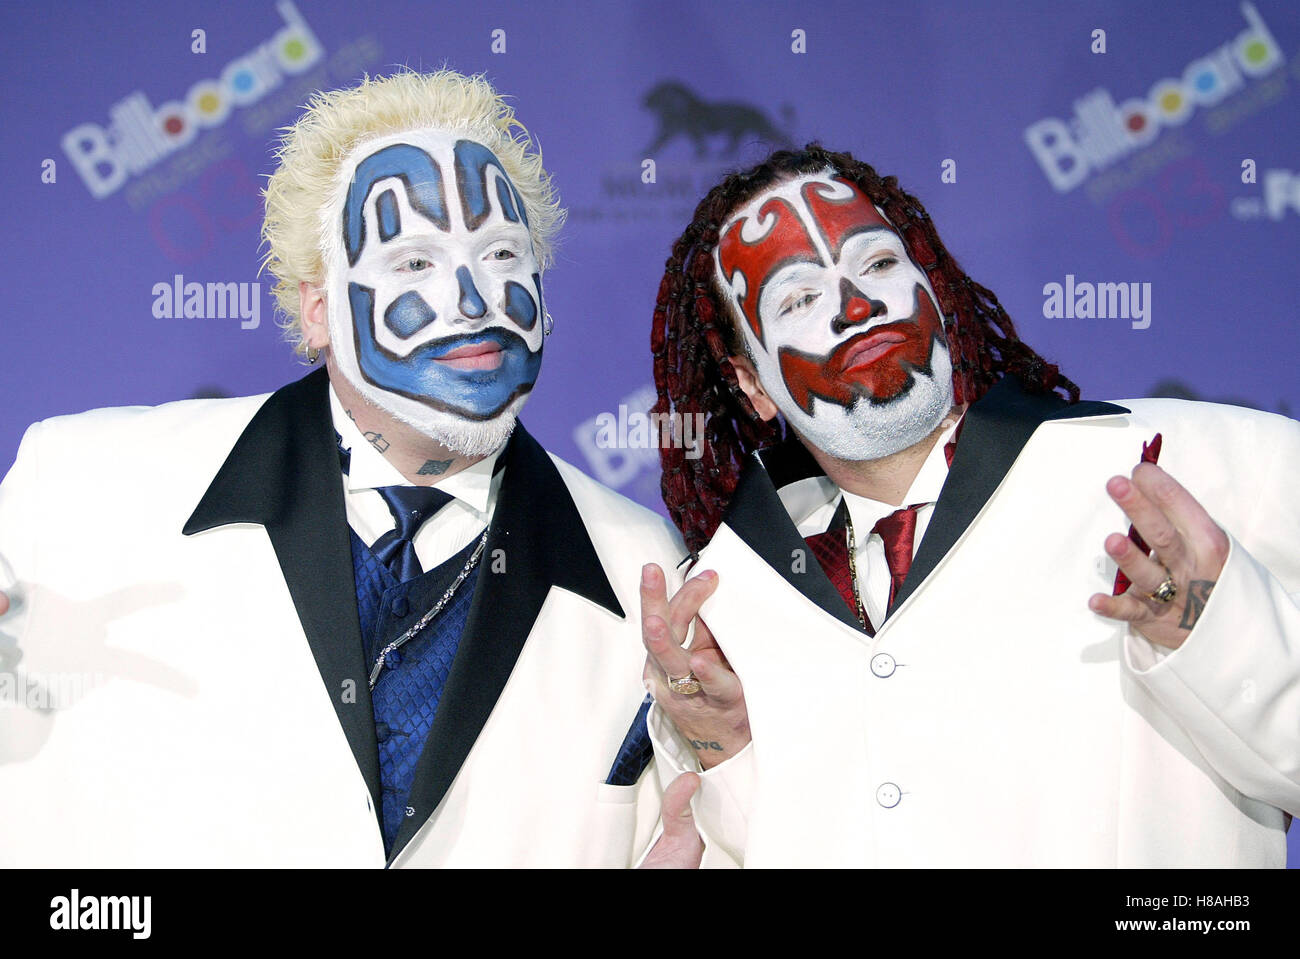 INSANE CLOWN POSSE BILLBOARD MUSIC AWARDS 2003 MGM GRAND HOTEL LAS VEGAS USA 10 Dezember 2003 Stockbild